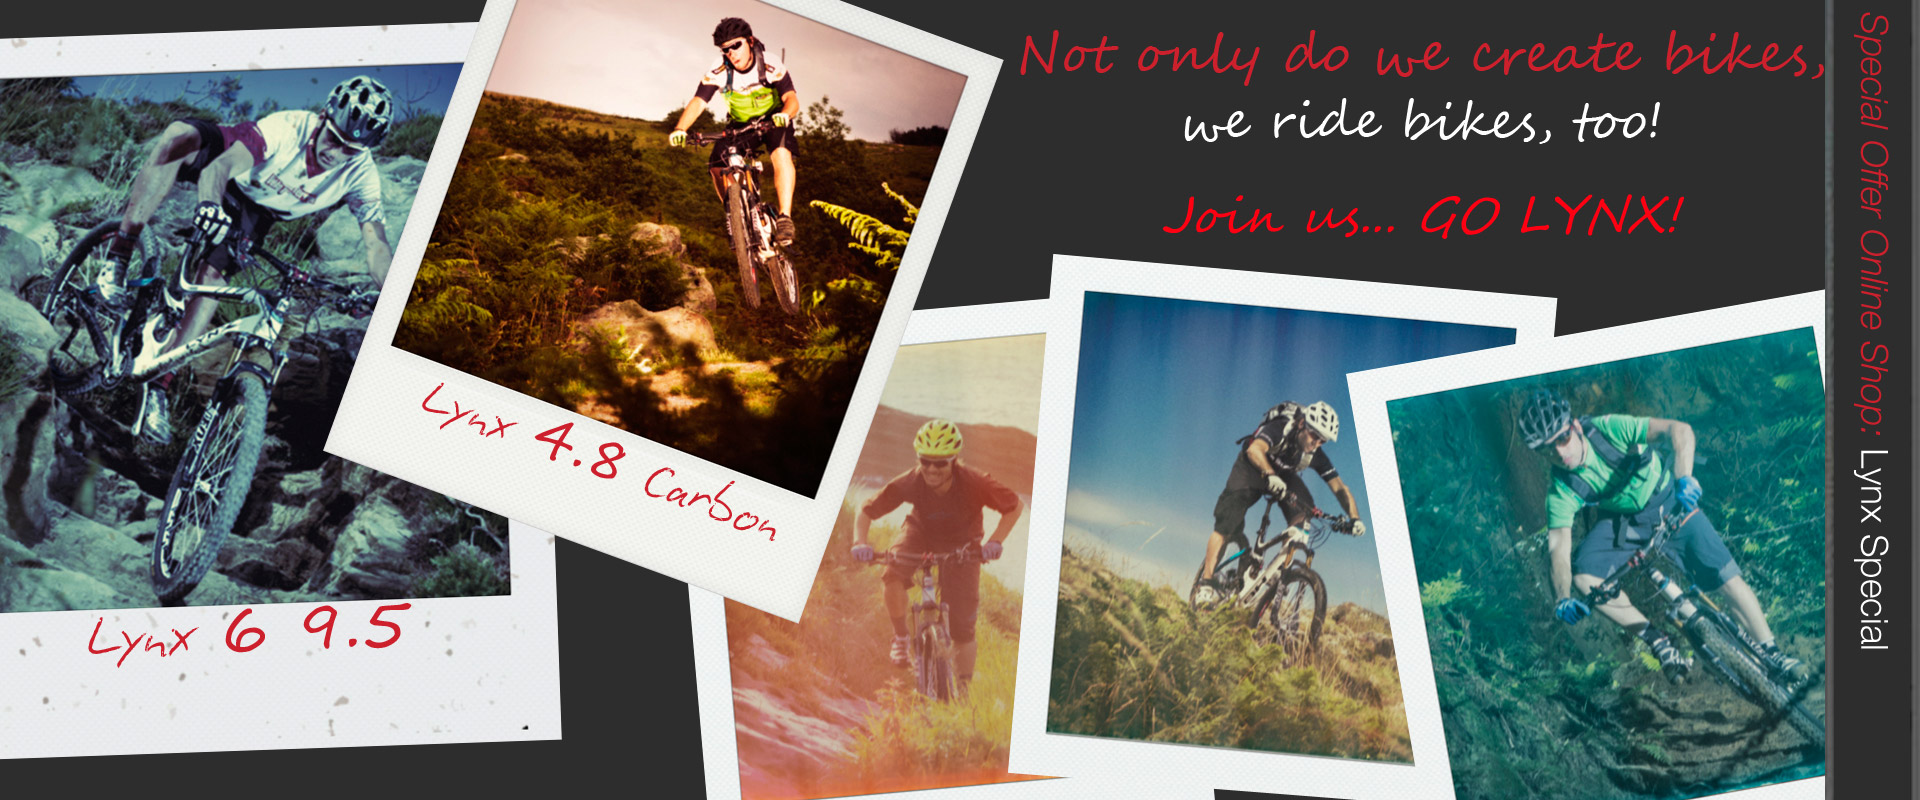 :  Not only do we create bikes, we ride bikes, too!